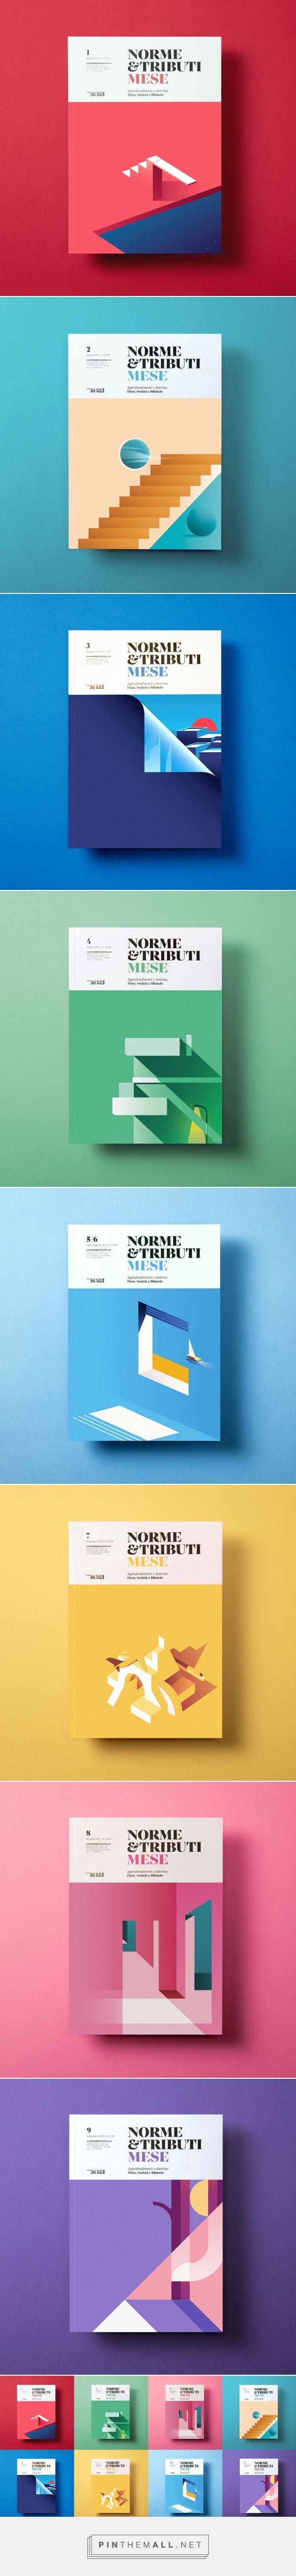 Norme & Tributi MESE - Il Sole 24 Ore on Behance - created via https://pinthemall.net